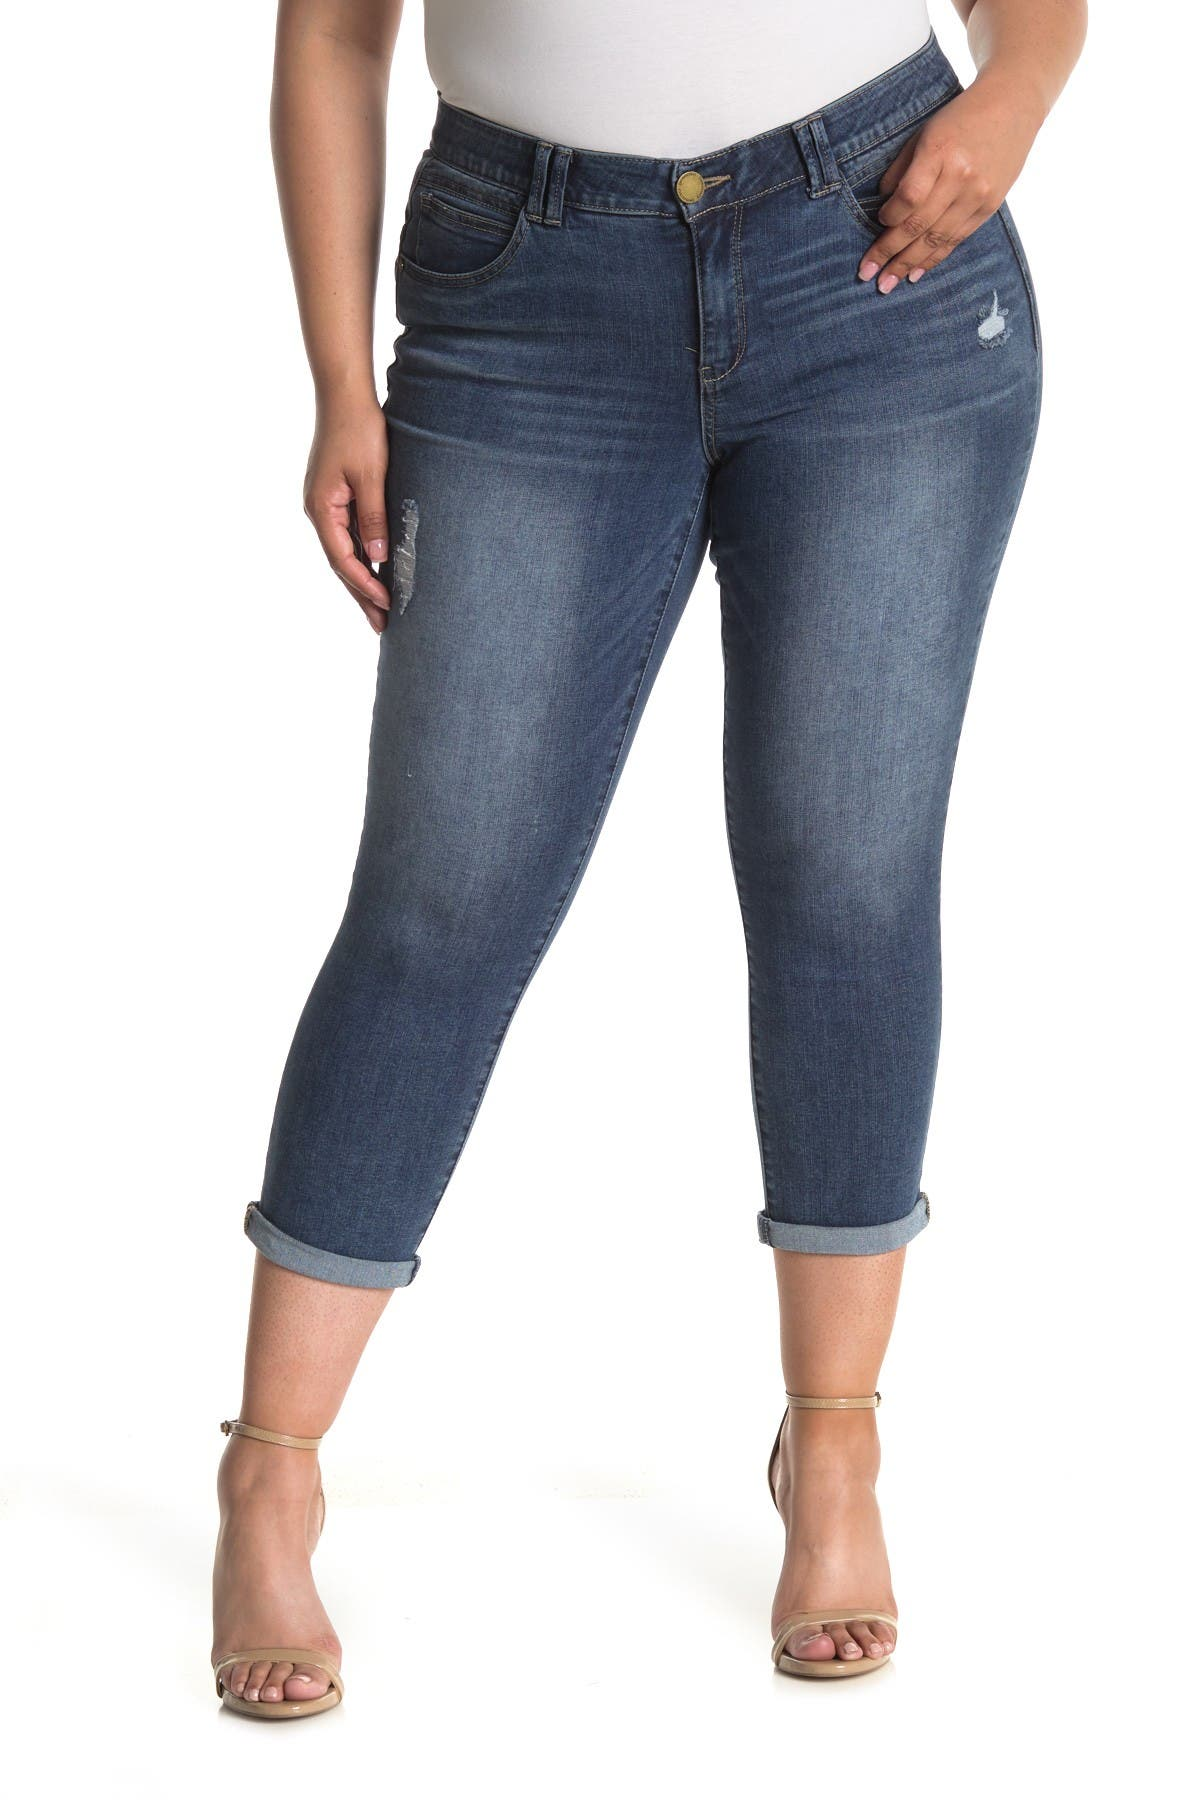 Image of Democracy Ab Technology Ankle Skimmer Jeans